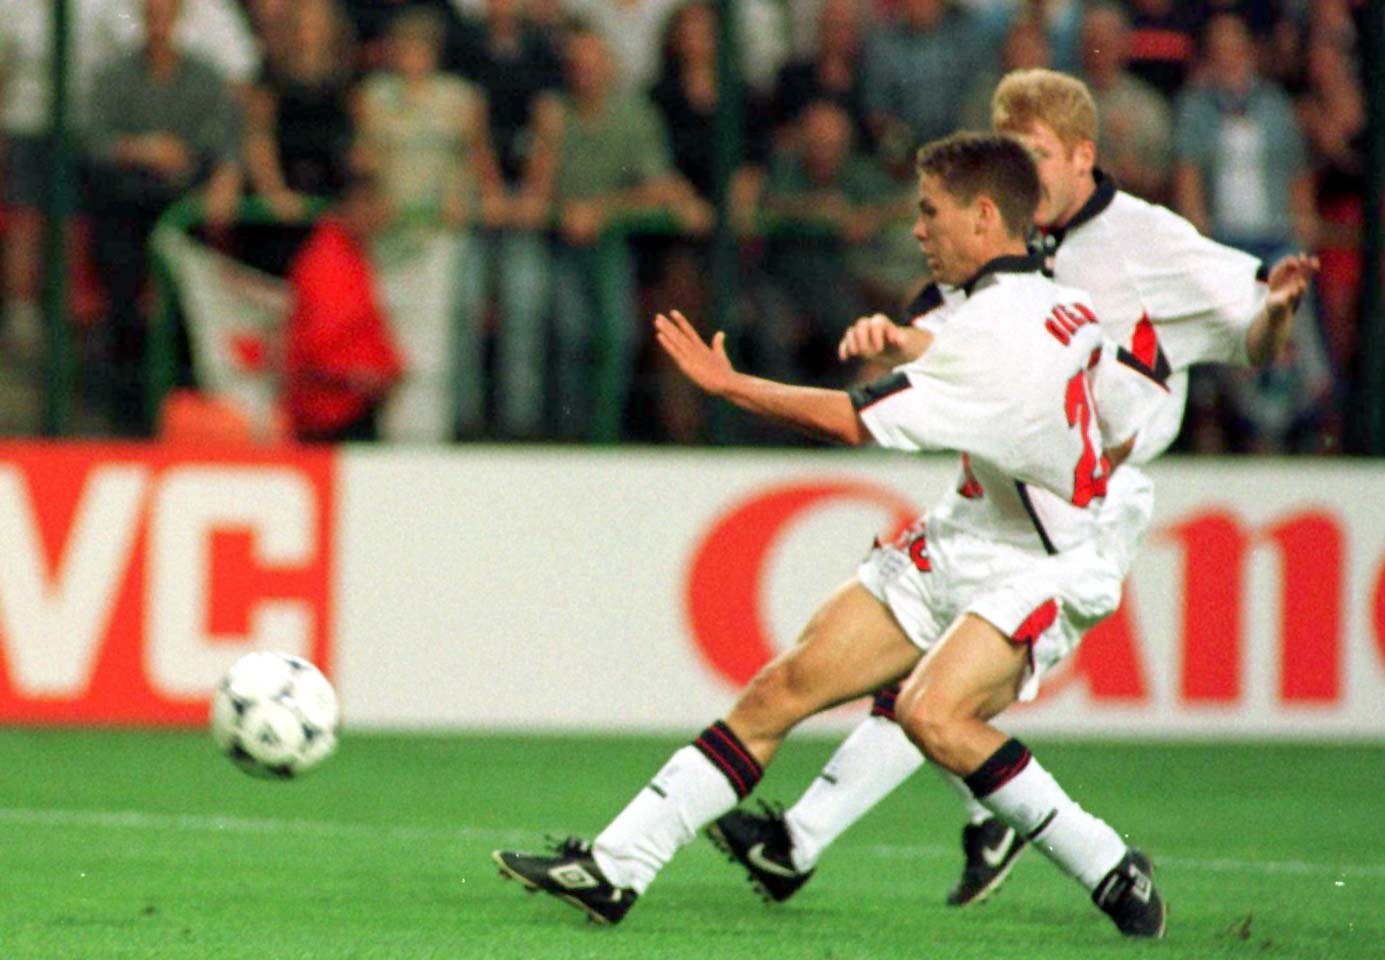 Michael Owen scoring in the 1998 World Cup. Image: PA Images